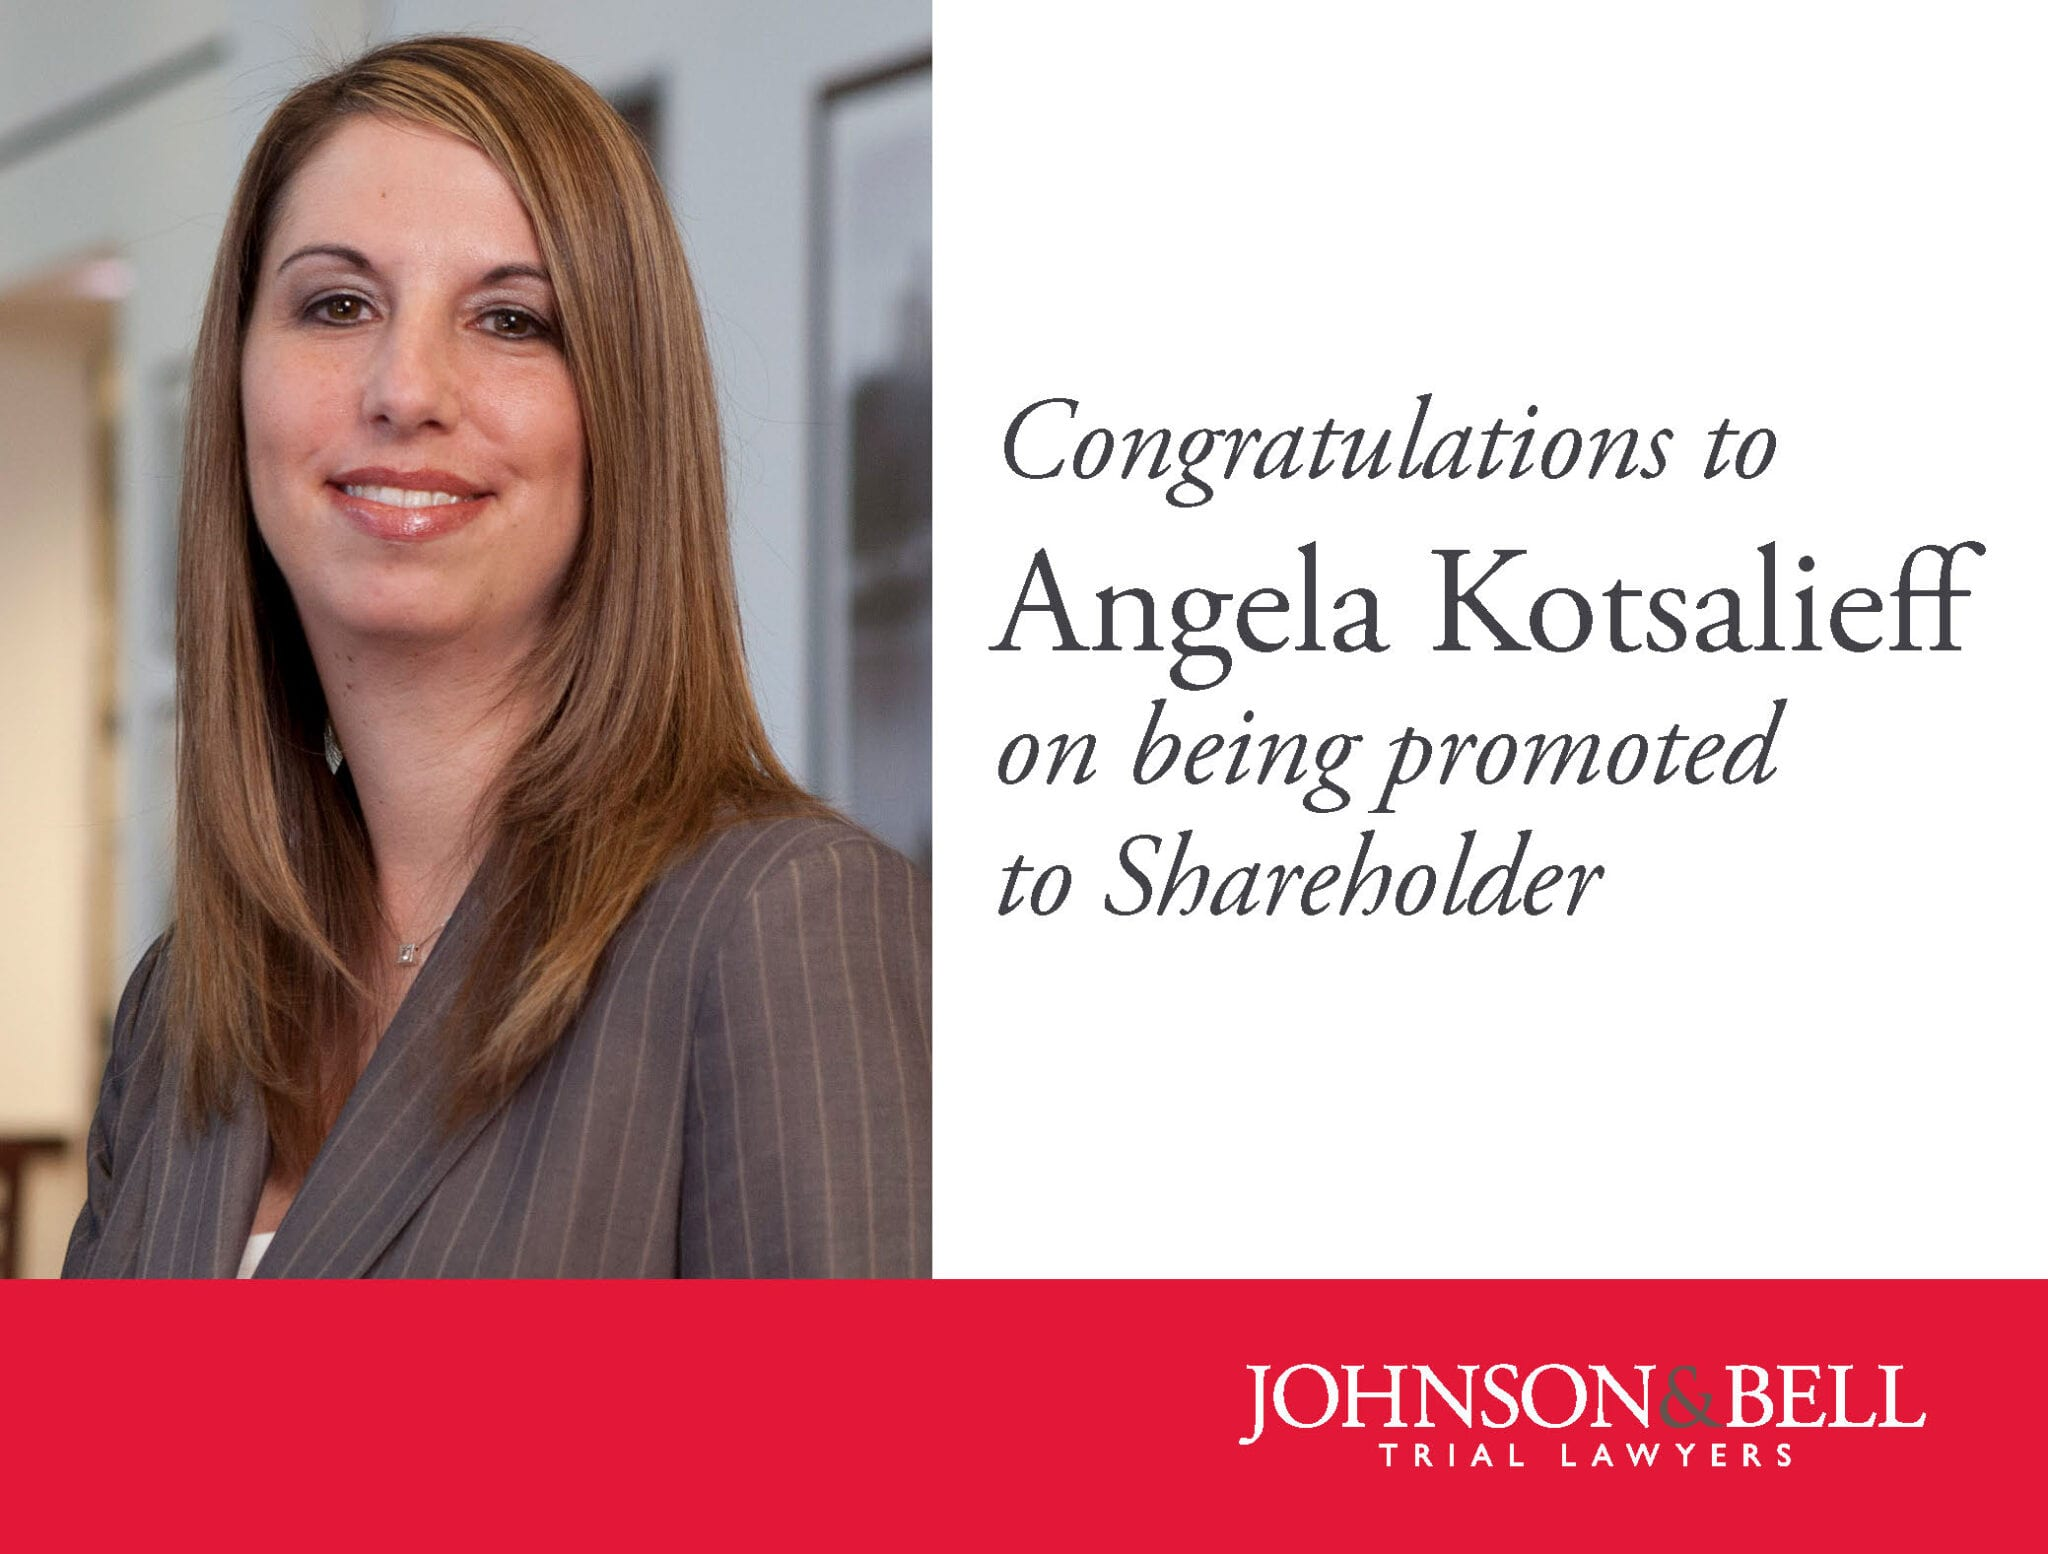 Angela Kotsalieff - Shareholder Promotion